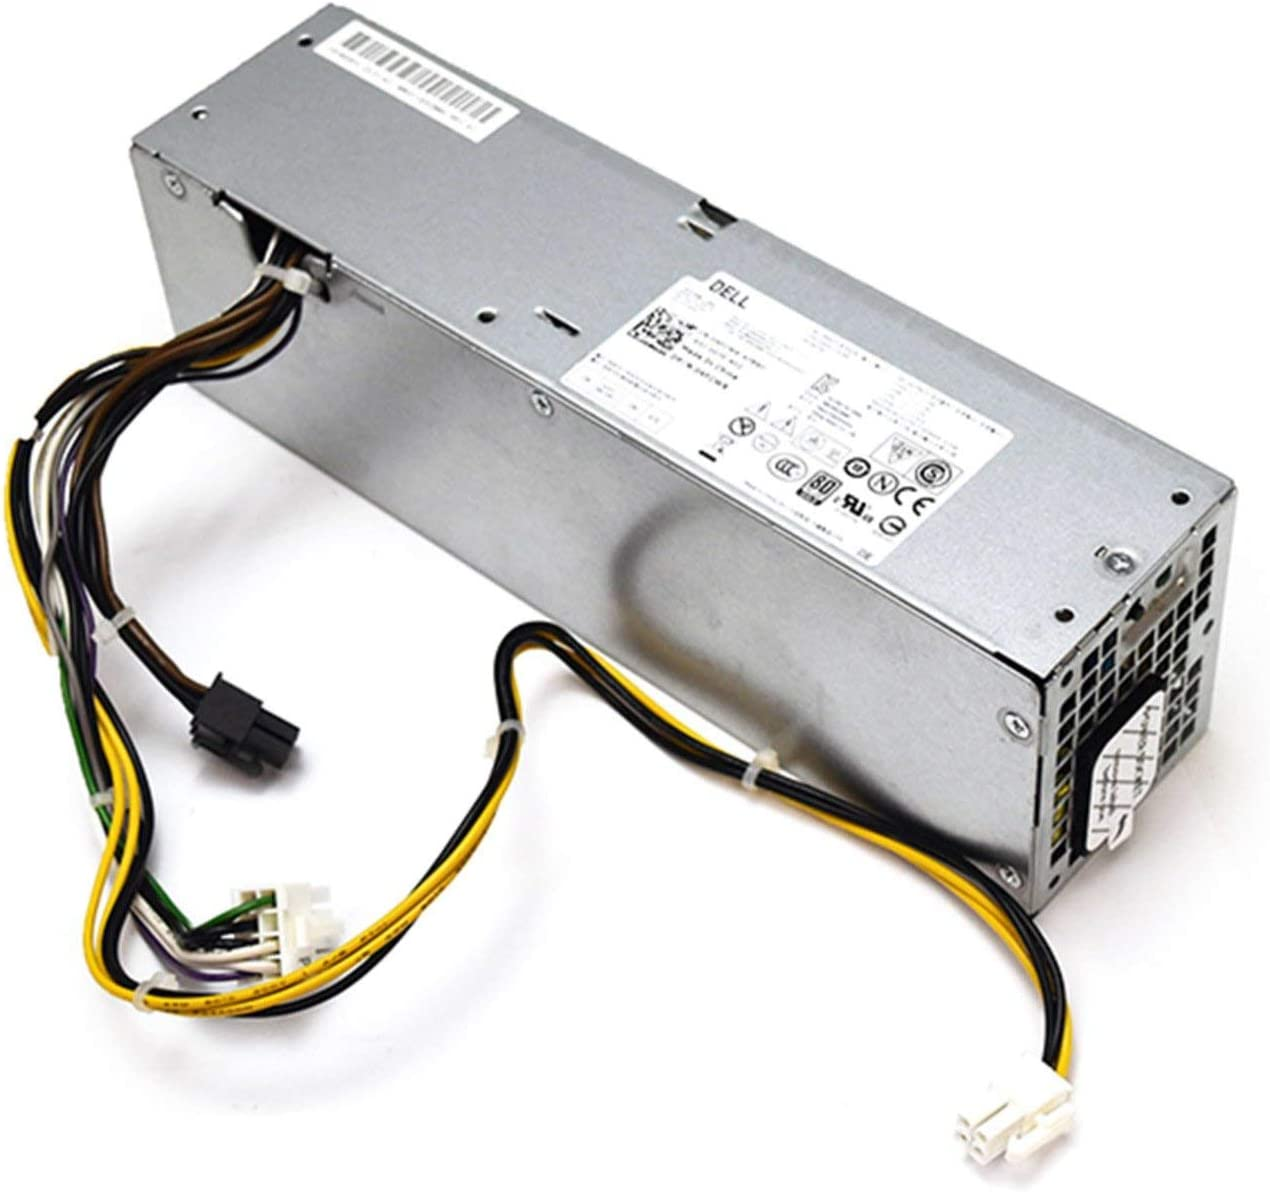 FOR DELL 4FCWX Genuine OEM Dell Optiplex XE2 Small Form Factor (SFF) Desktop PC System Power Supply Unit PSU 315 Watt D315ES-00 D315E001L VX372 (Renewed)